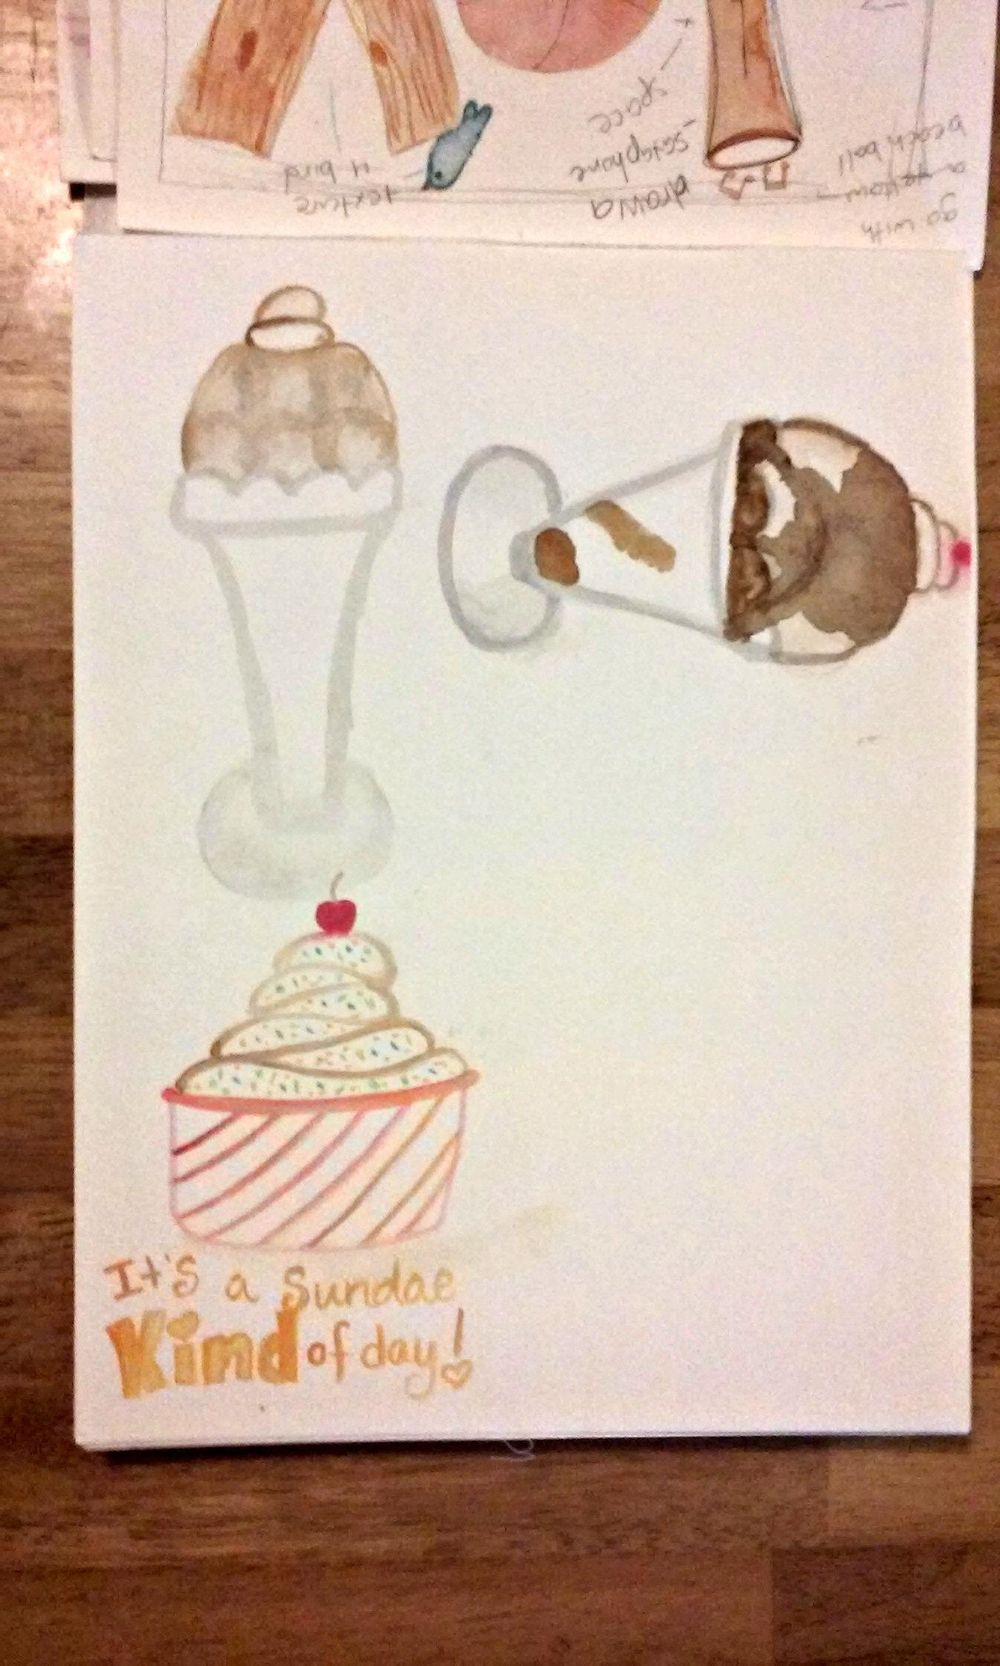 Painting Desserts - image 2 - student project